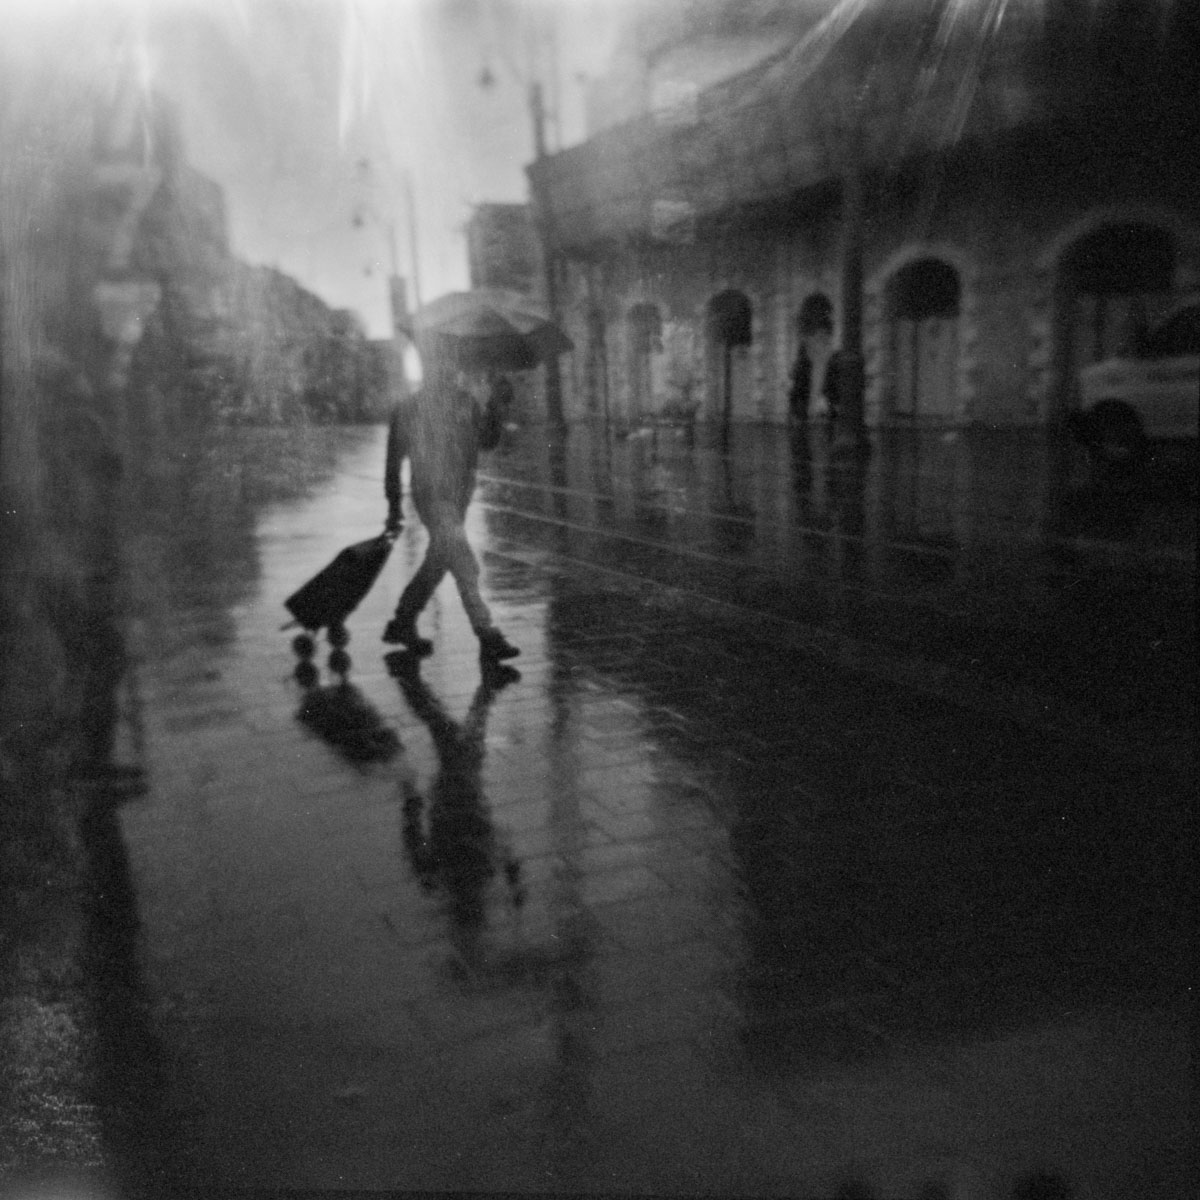 in Jerusalem with Holga - plastic medium format camera